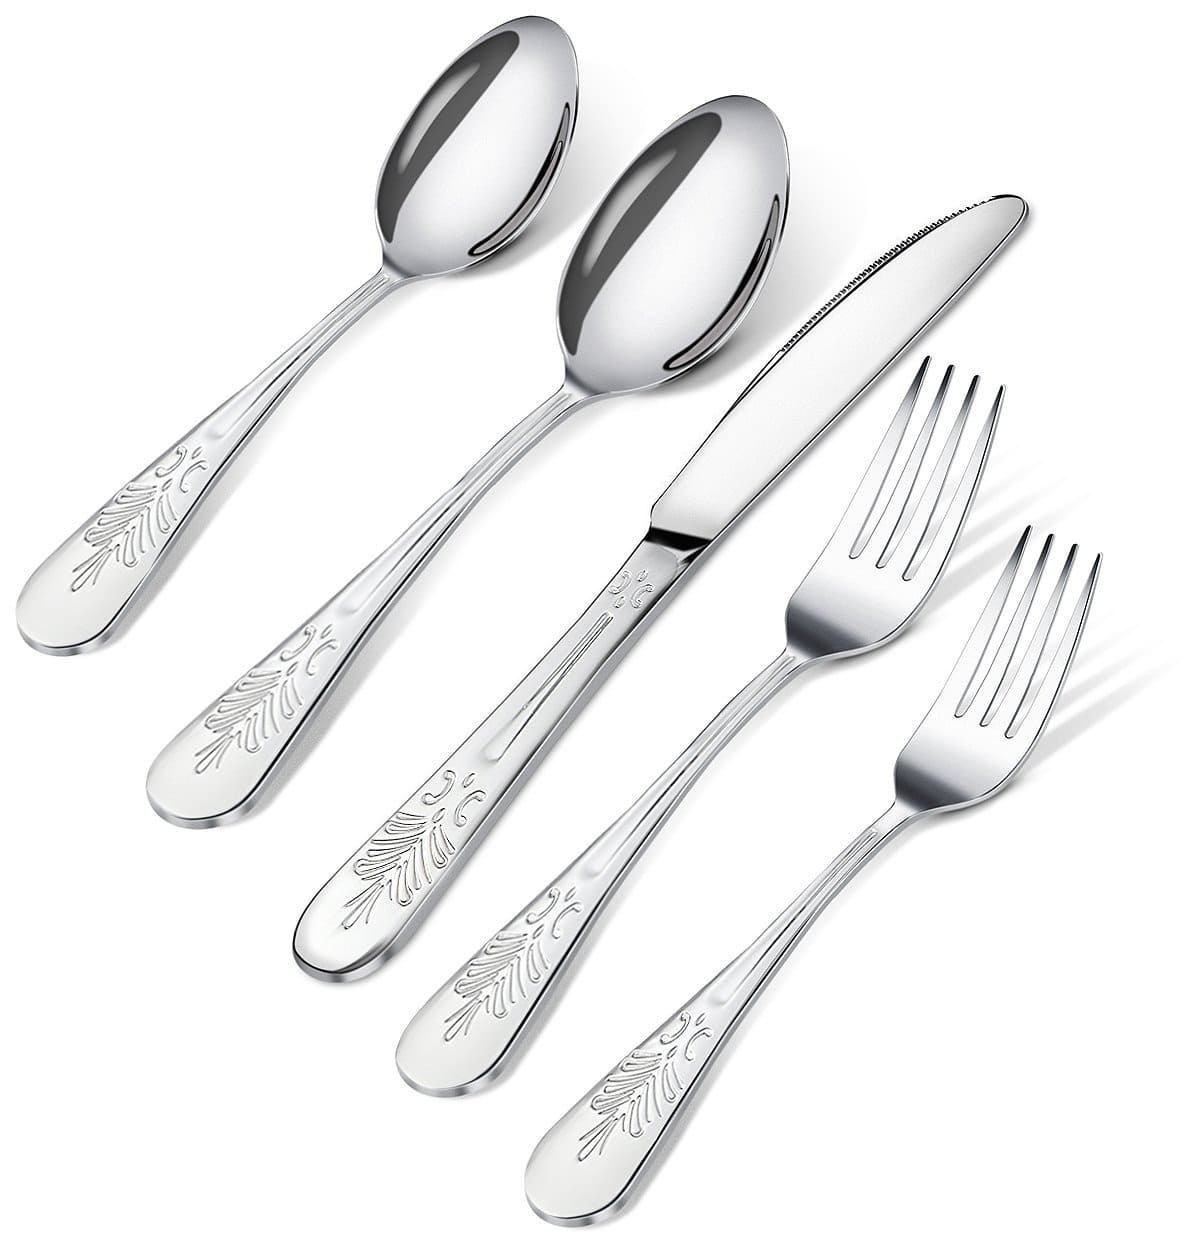 20 Piece Stainless Steel Flatware Set - $13.99 Free shipping @ Amazon